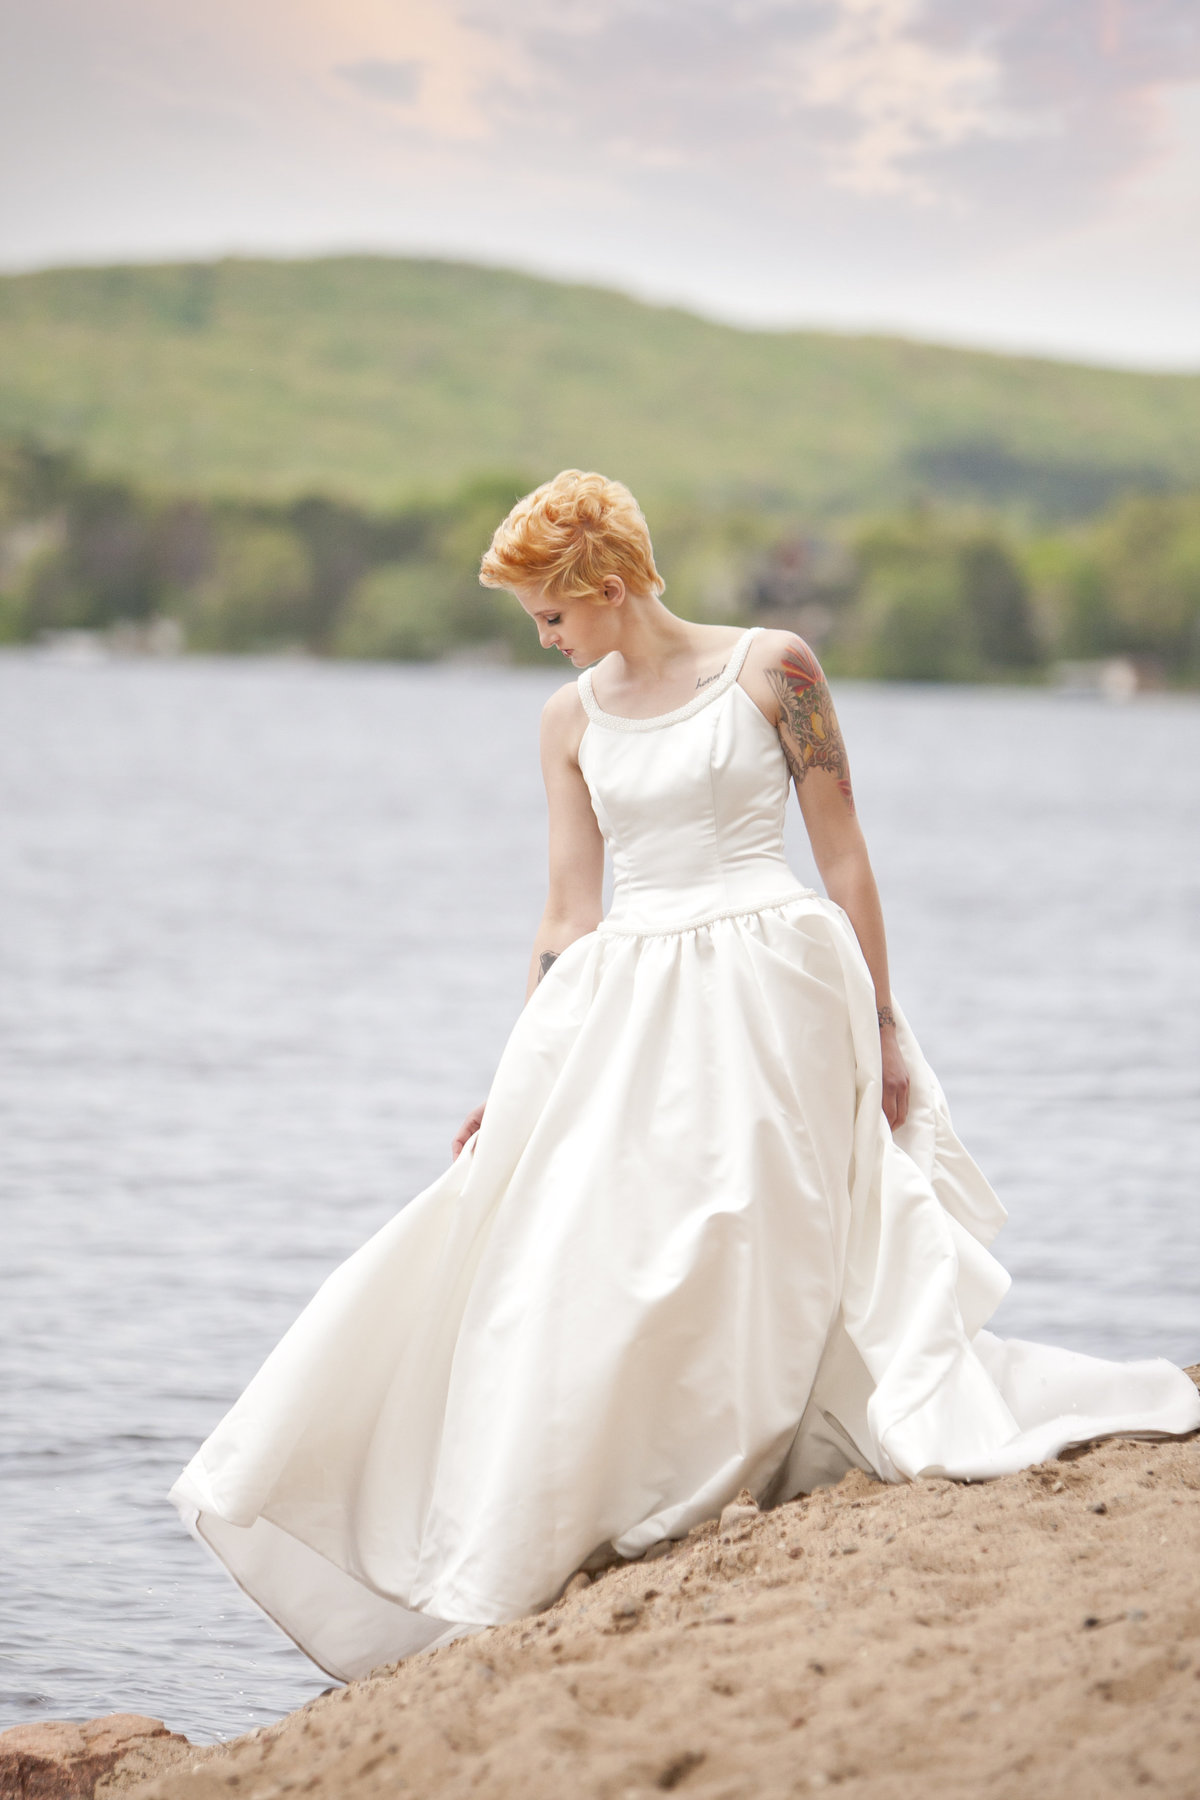 Tattooed bride bridal on the beach in Wausau by Casi Lea Photography-green bay wedding photographer-door county wedding photographer-milwaukee wedding photographer-appleton wedding photographer-wisconsin weddings